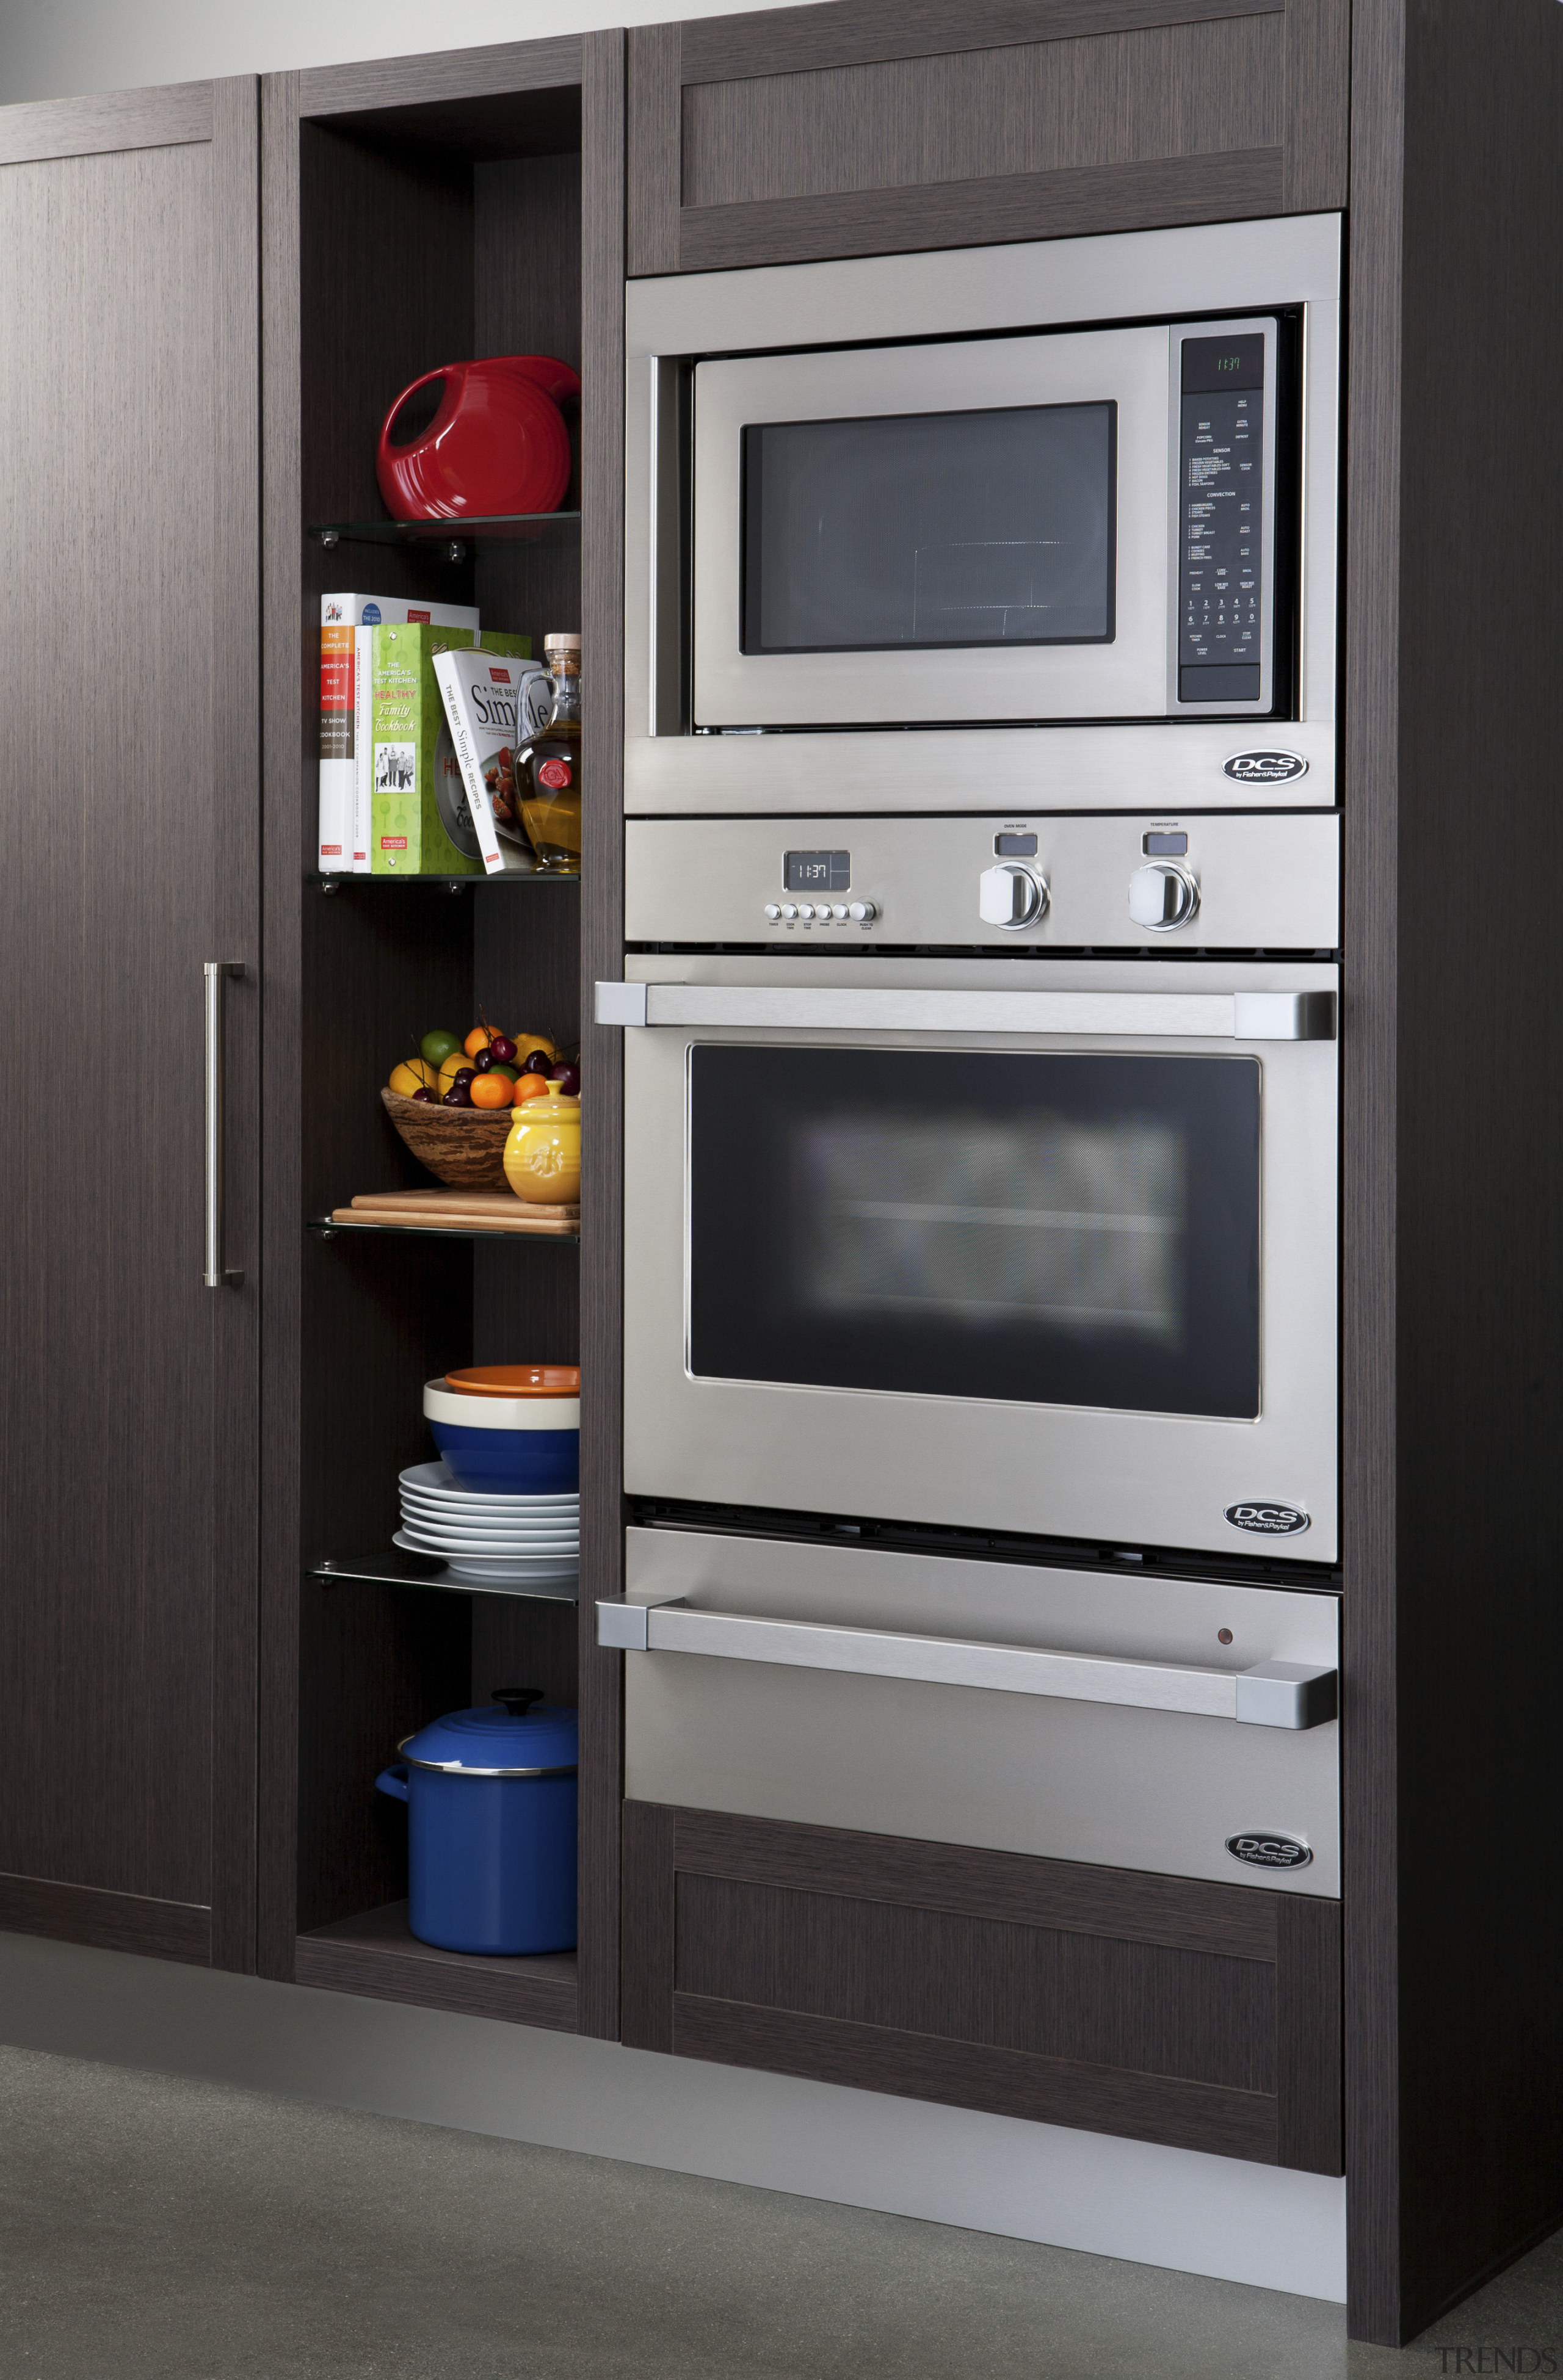 View of the new indoor kitchen collection by furniture, home appliance, kitchen, kitchen appliance, kitchen stove, major appliance, microwave oven, oven, refrigerator, gray, black